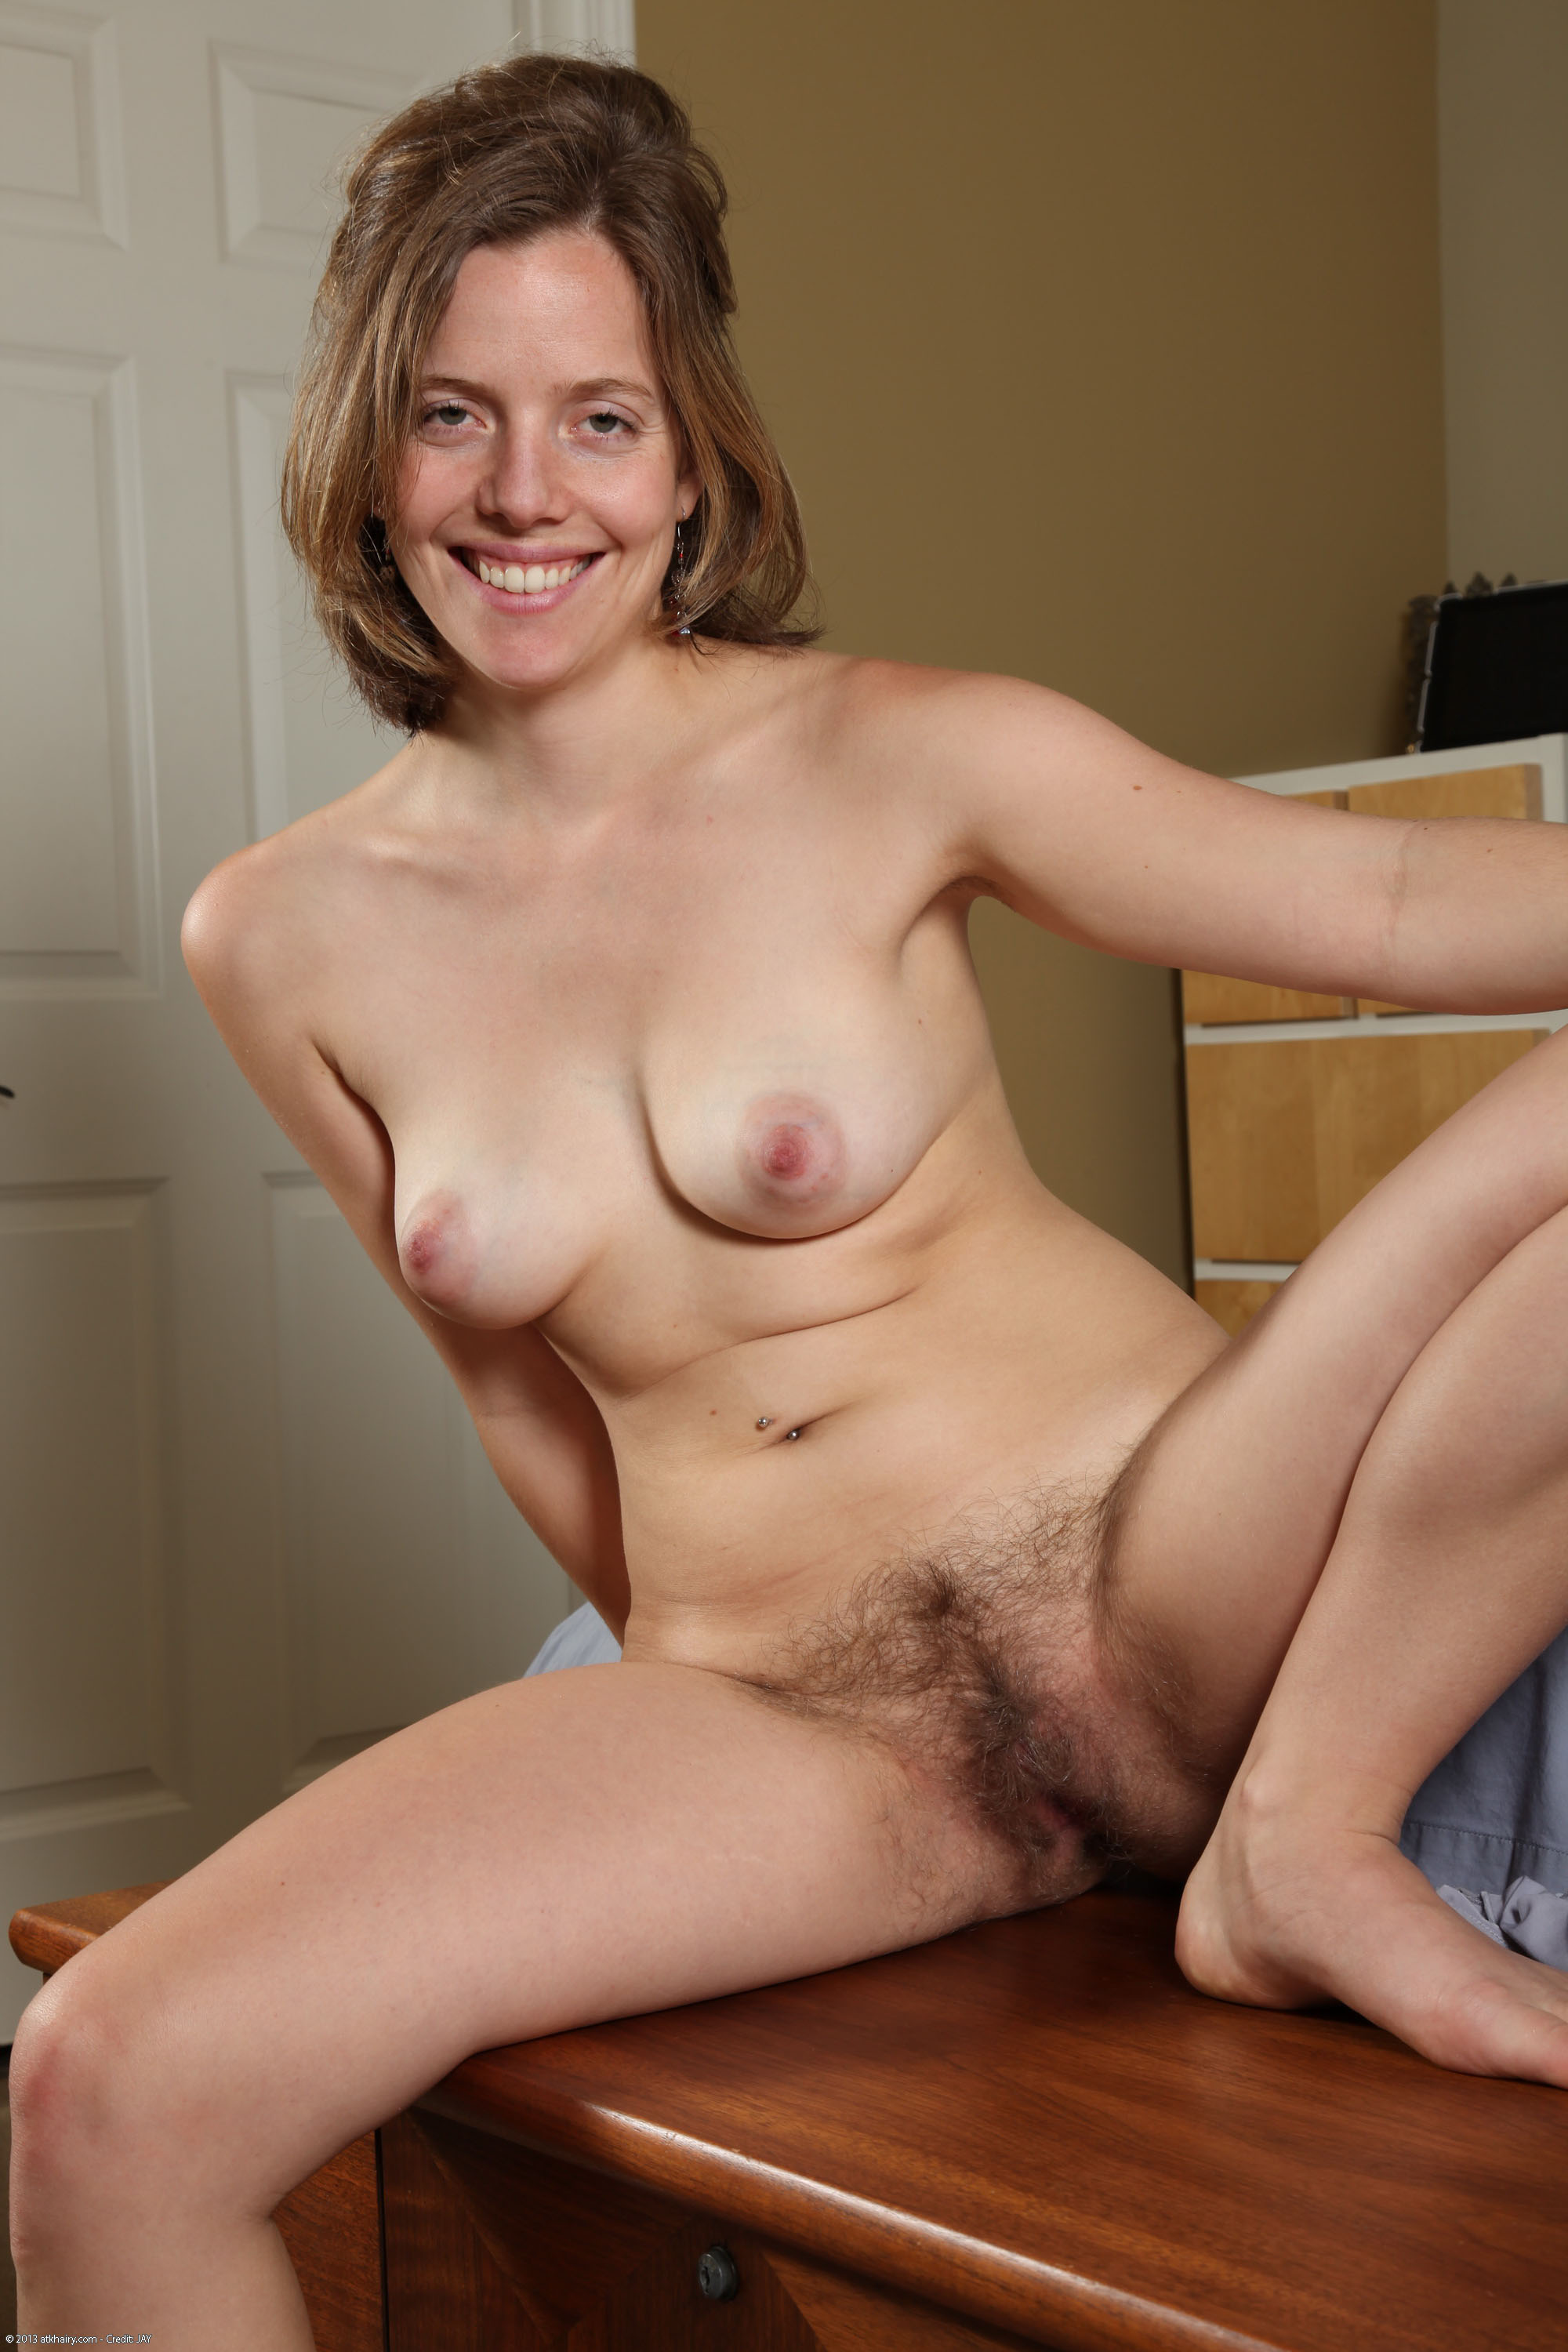 Ameauture women nude all ages seems